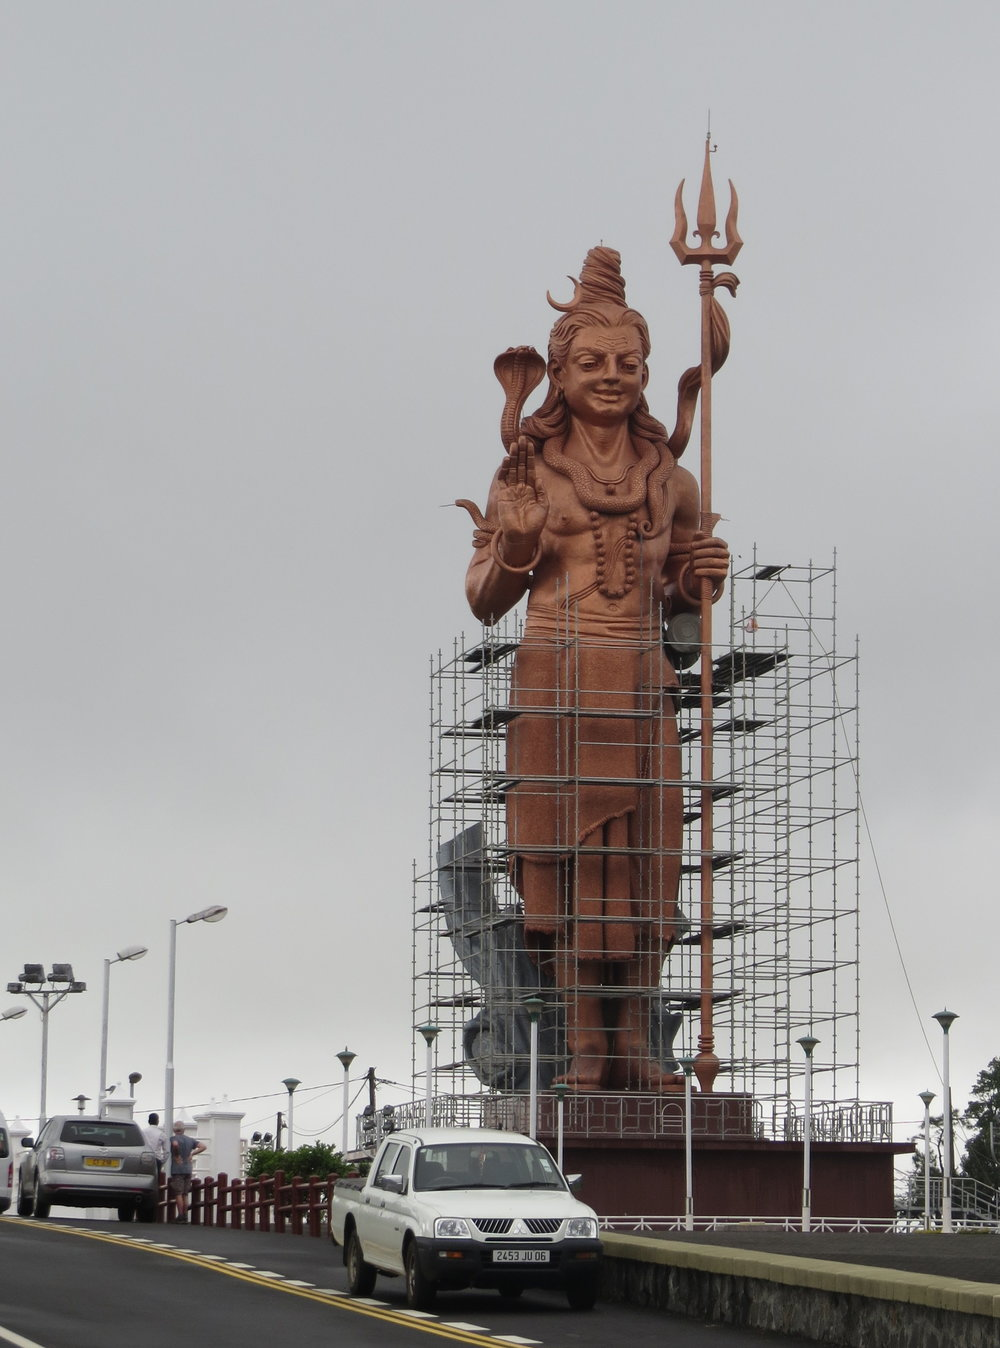 We knew we had arrived when we saw a huge statue of Shiva under construction..